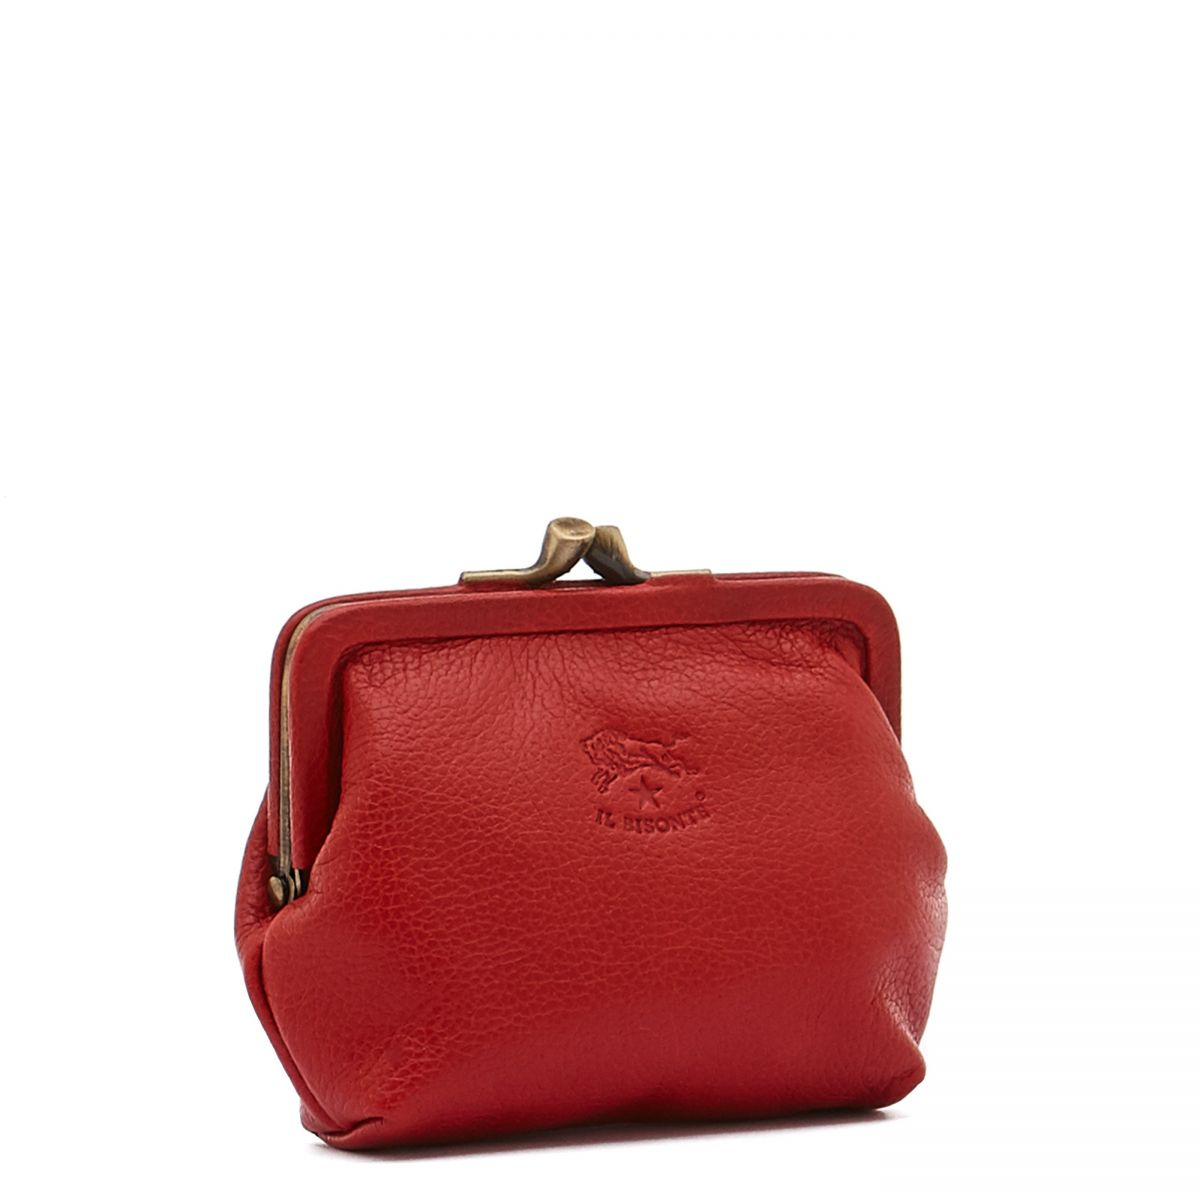 Women's Coin Purse in Cowhide Double Leather color Red - SCP005 | Details